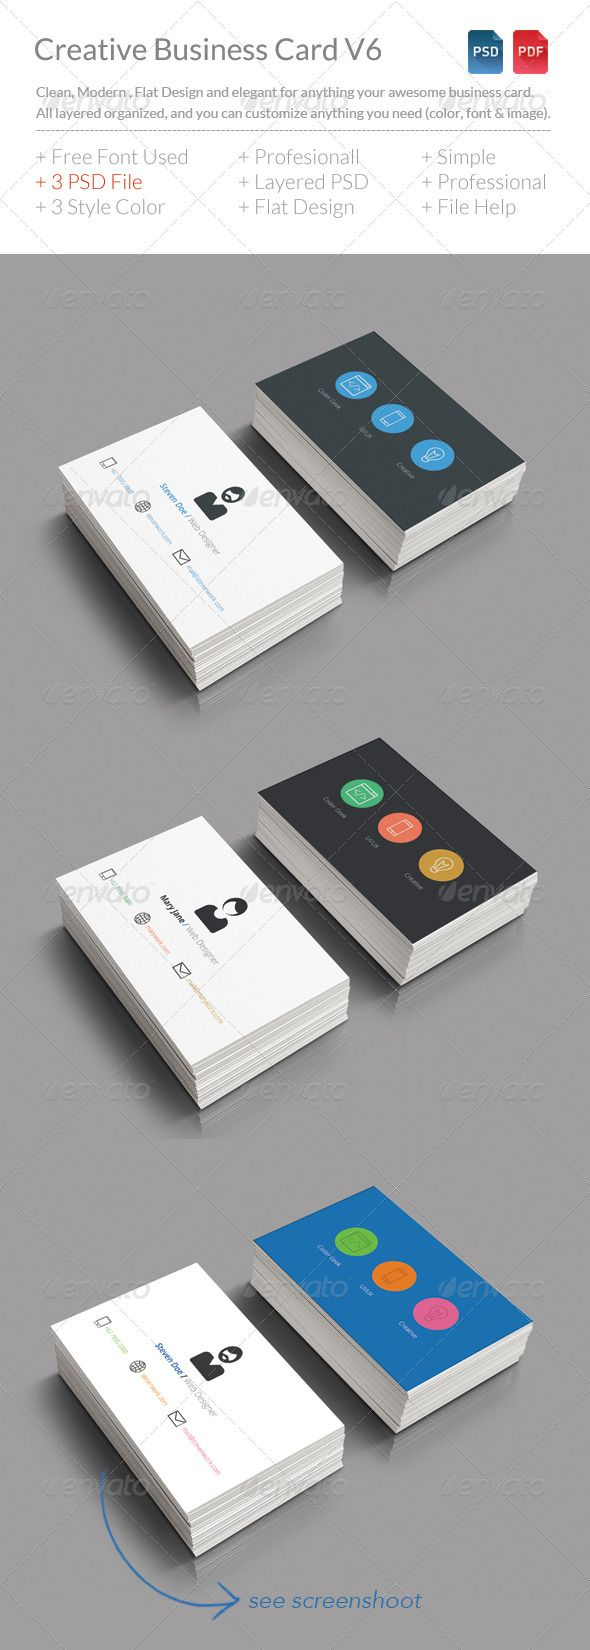 Creative Business Card V6  download in here http://graphicriver.net/item/creative-business-card-v6/8207243?WT.ac=category_thumb&WT.z_author=BdgPixel